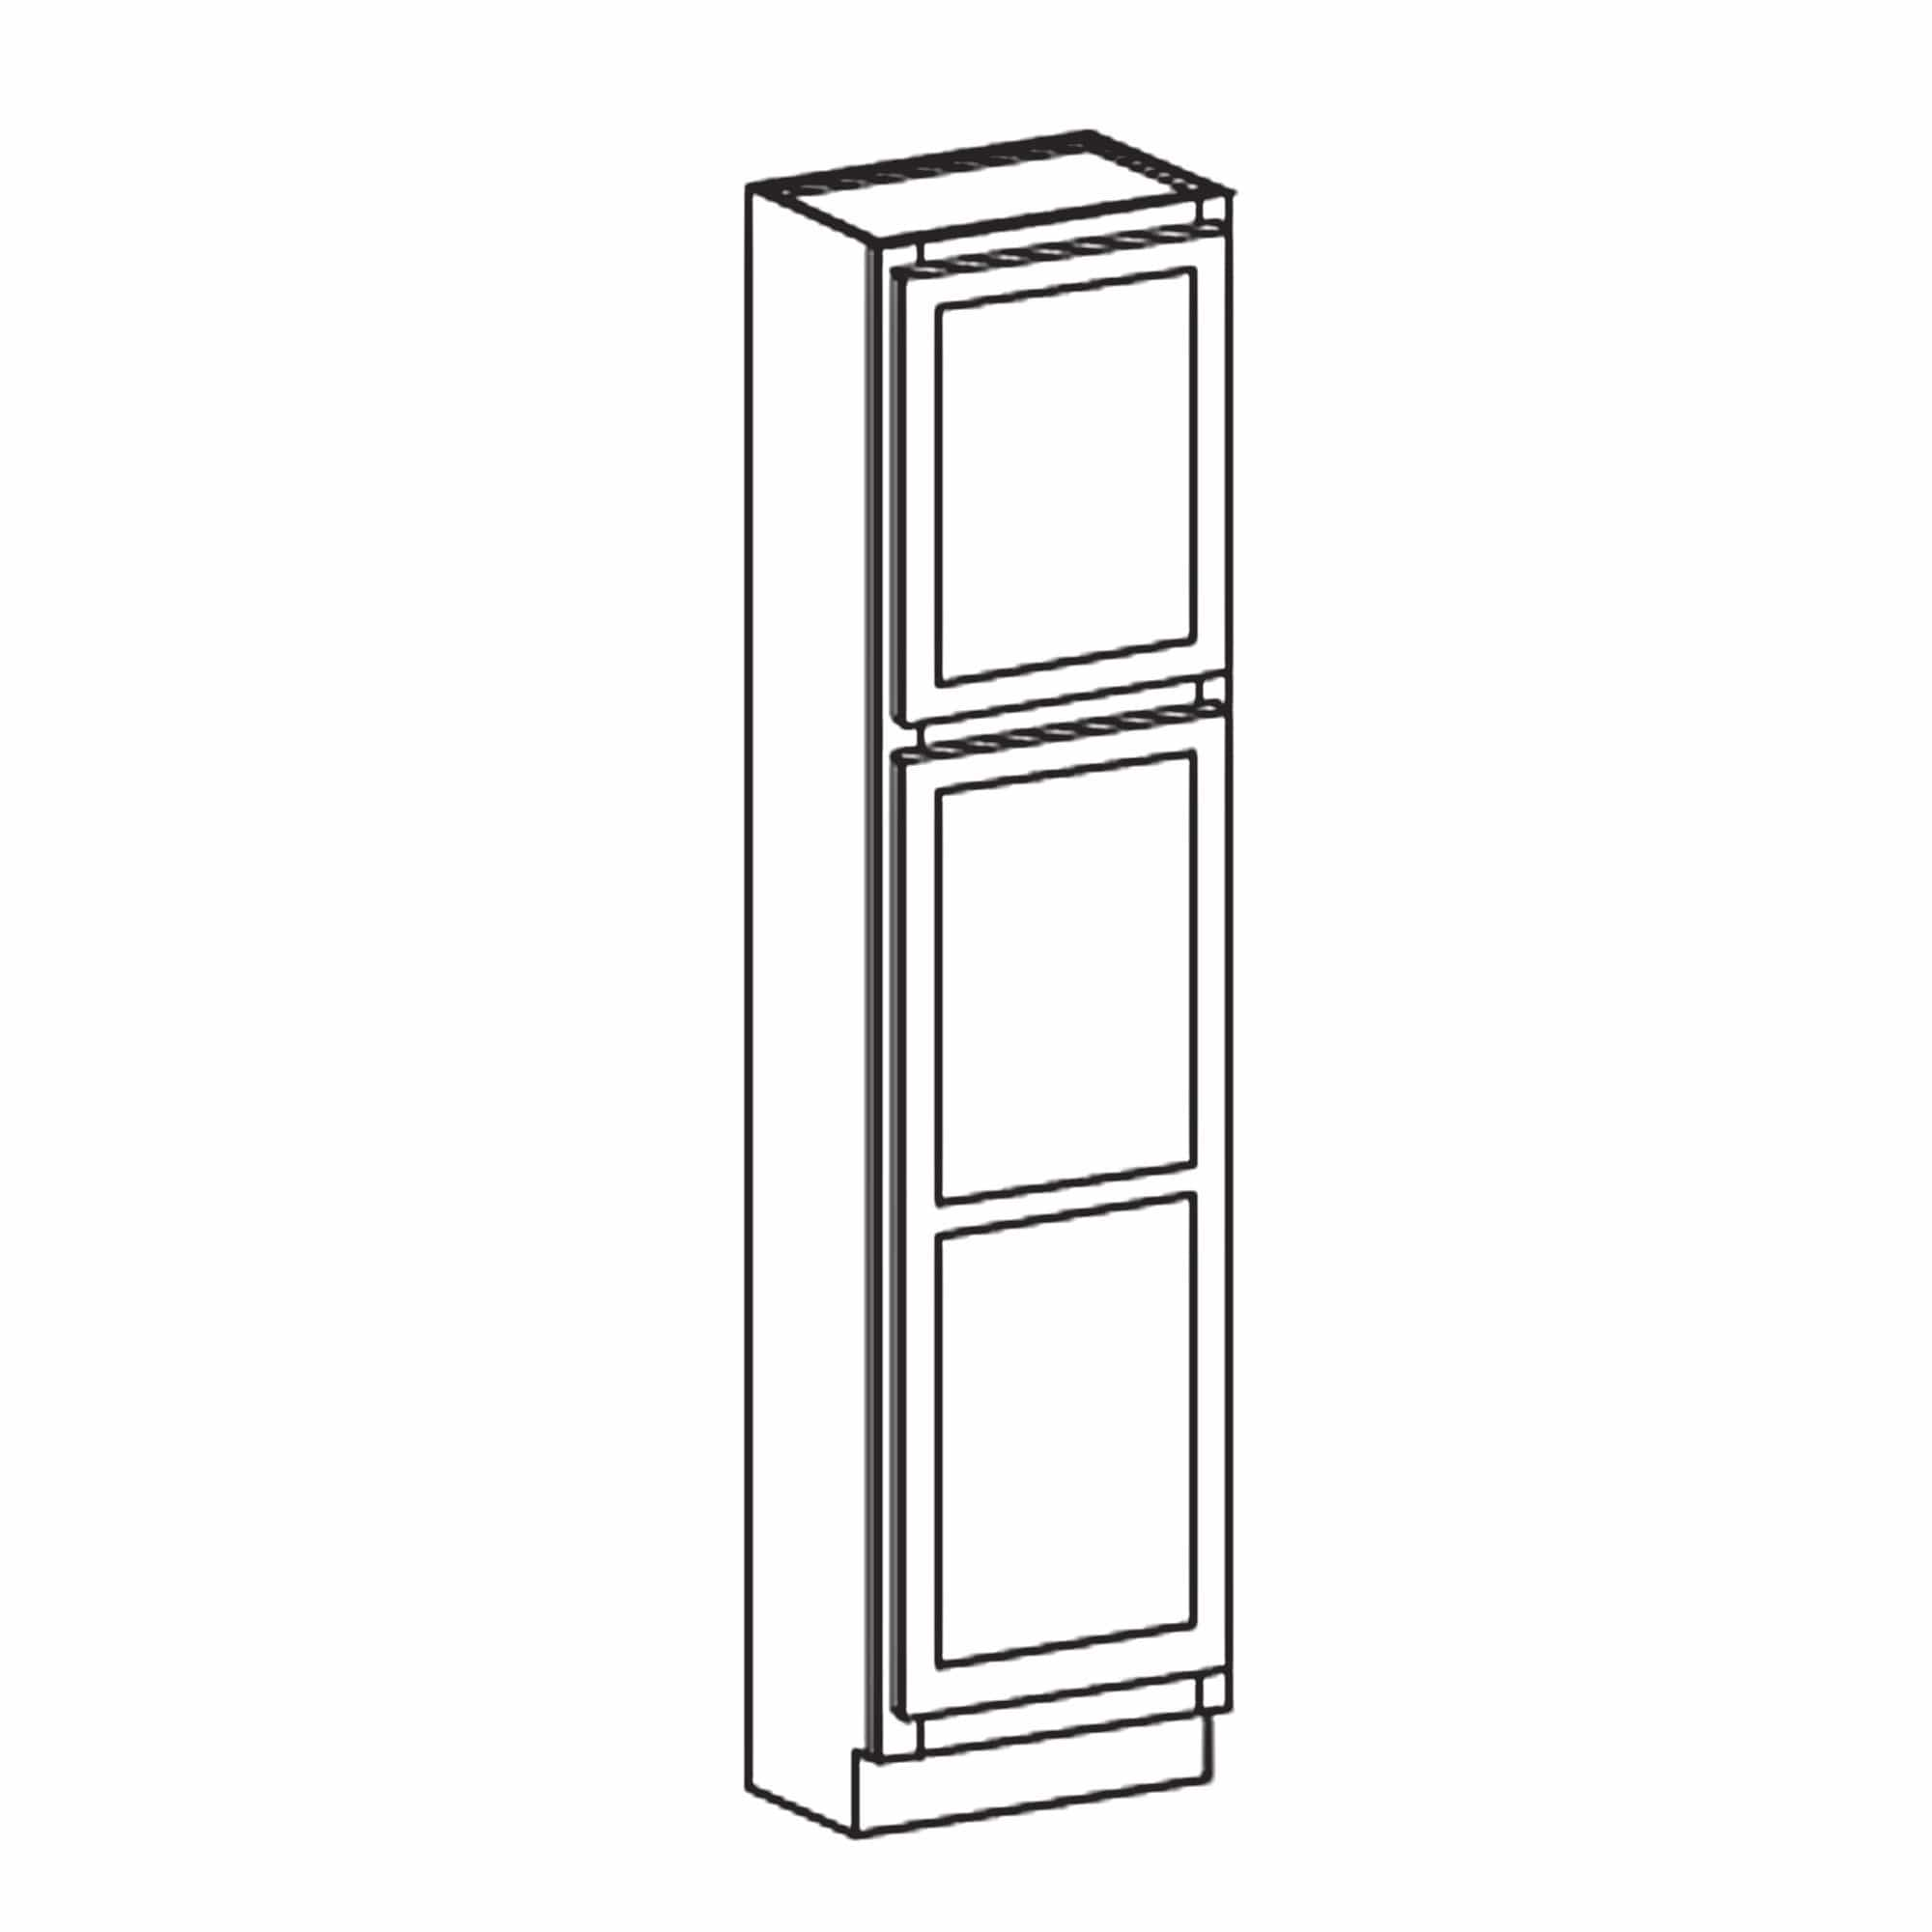 84 Tall Pantry White Shaker Cabinet Available 18 24 30 Wide